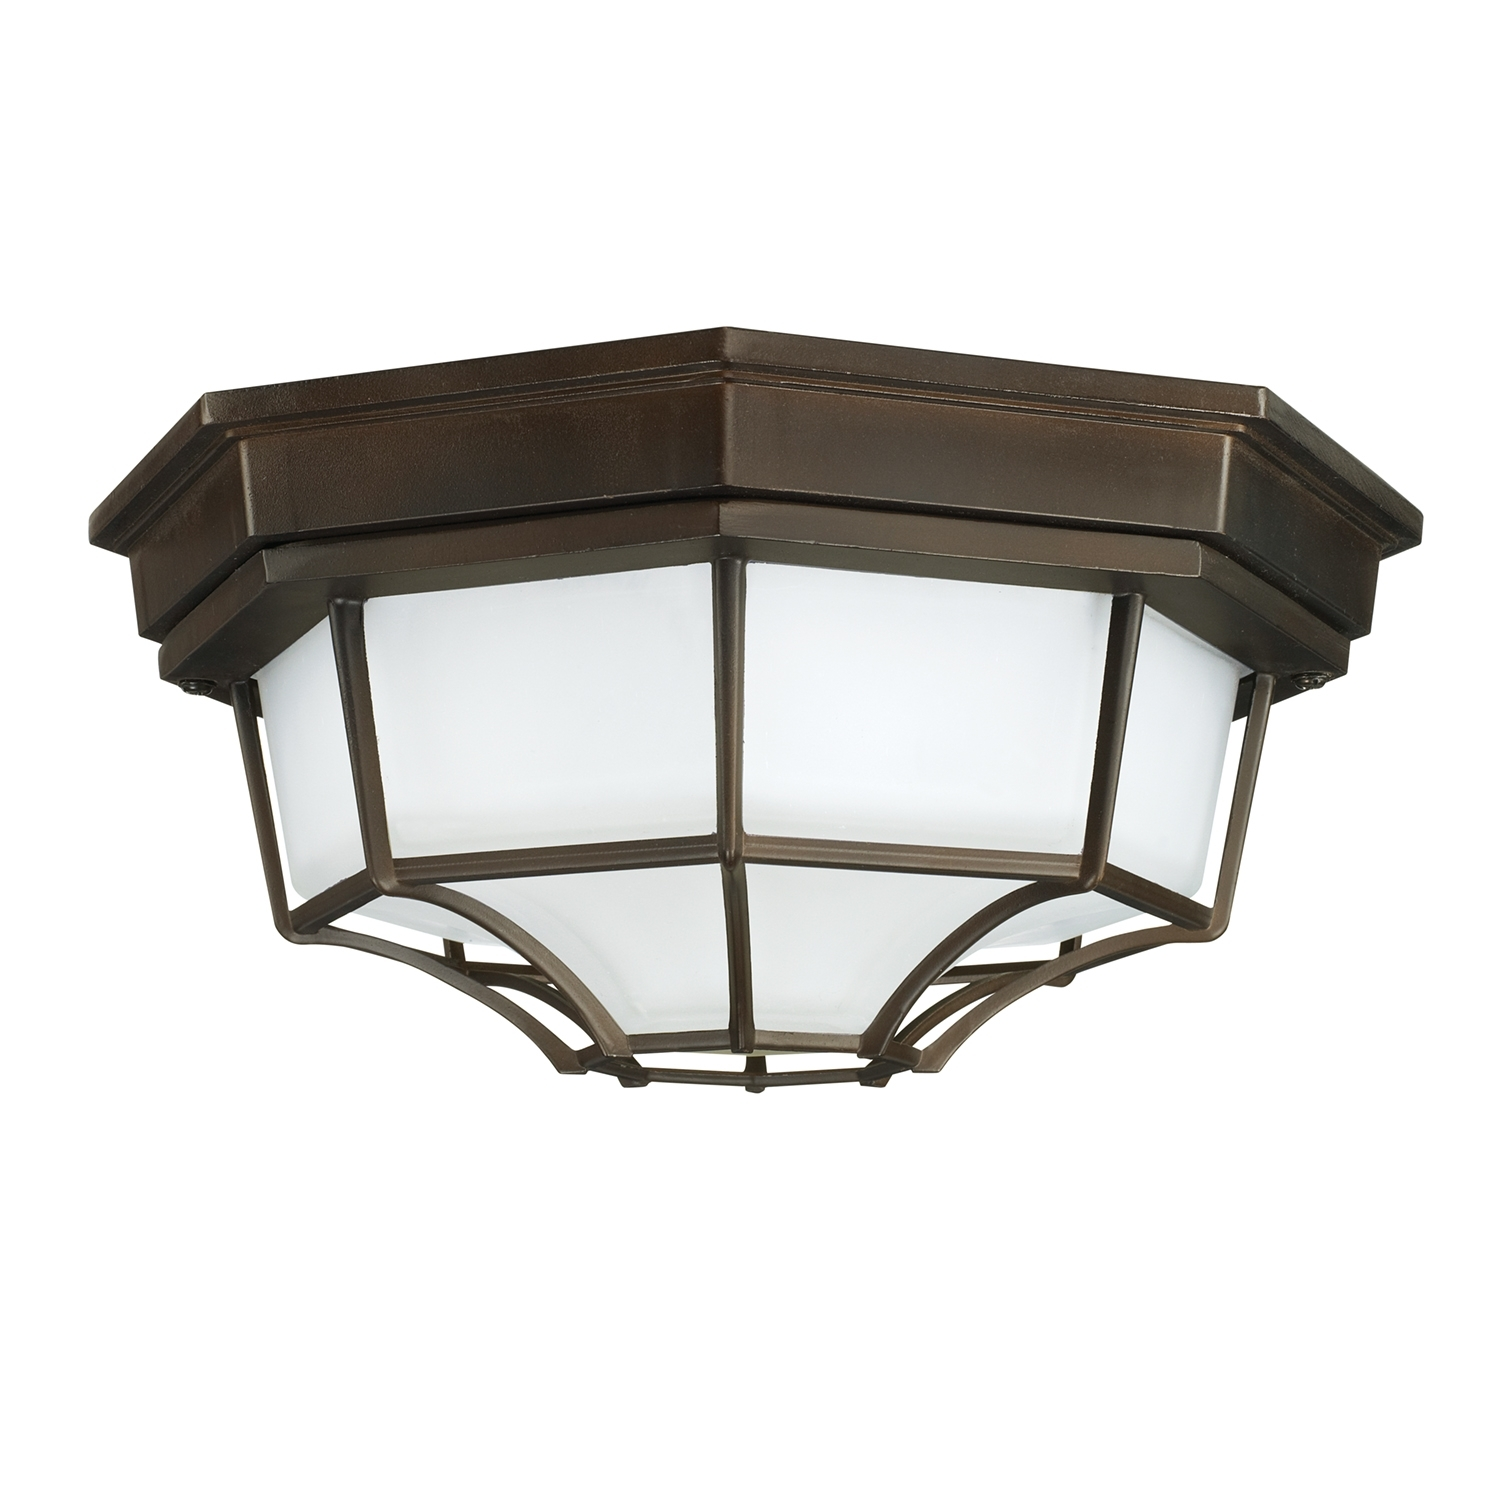 Outdoor Ceiling Lighting | Capital Lighting With Regard To Ceiling Outdoor Lights For Front Porch (#10 of 15)